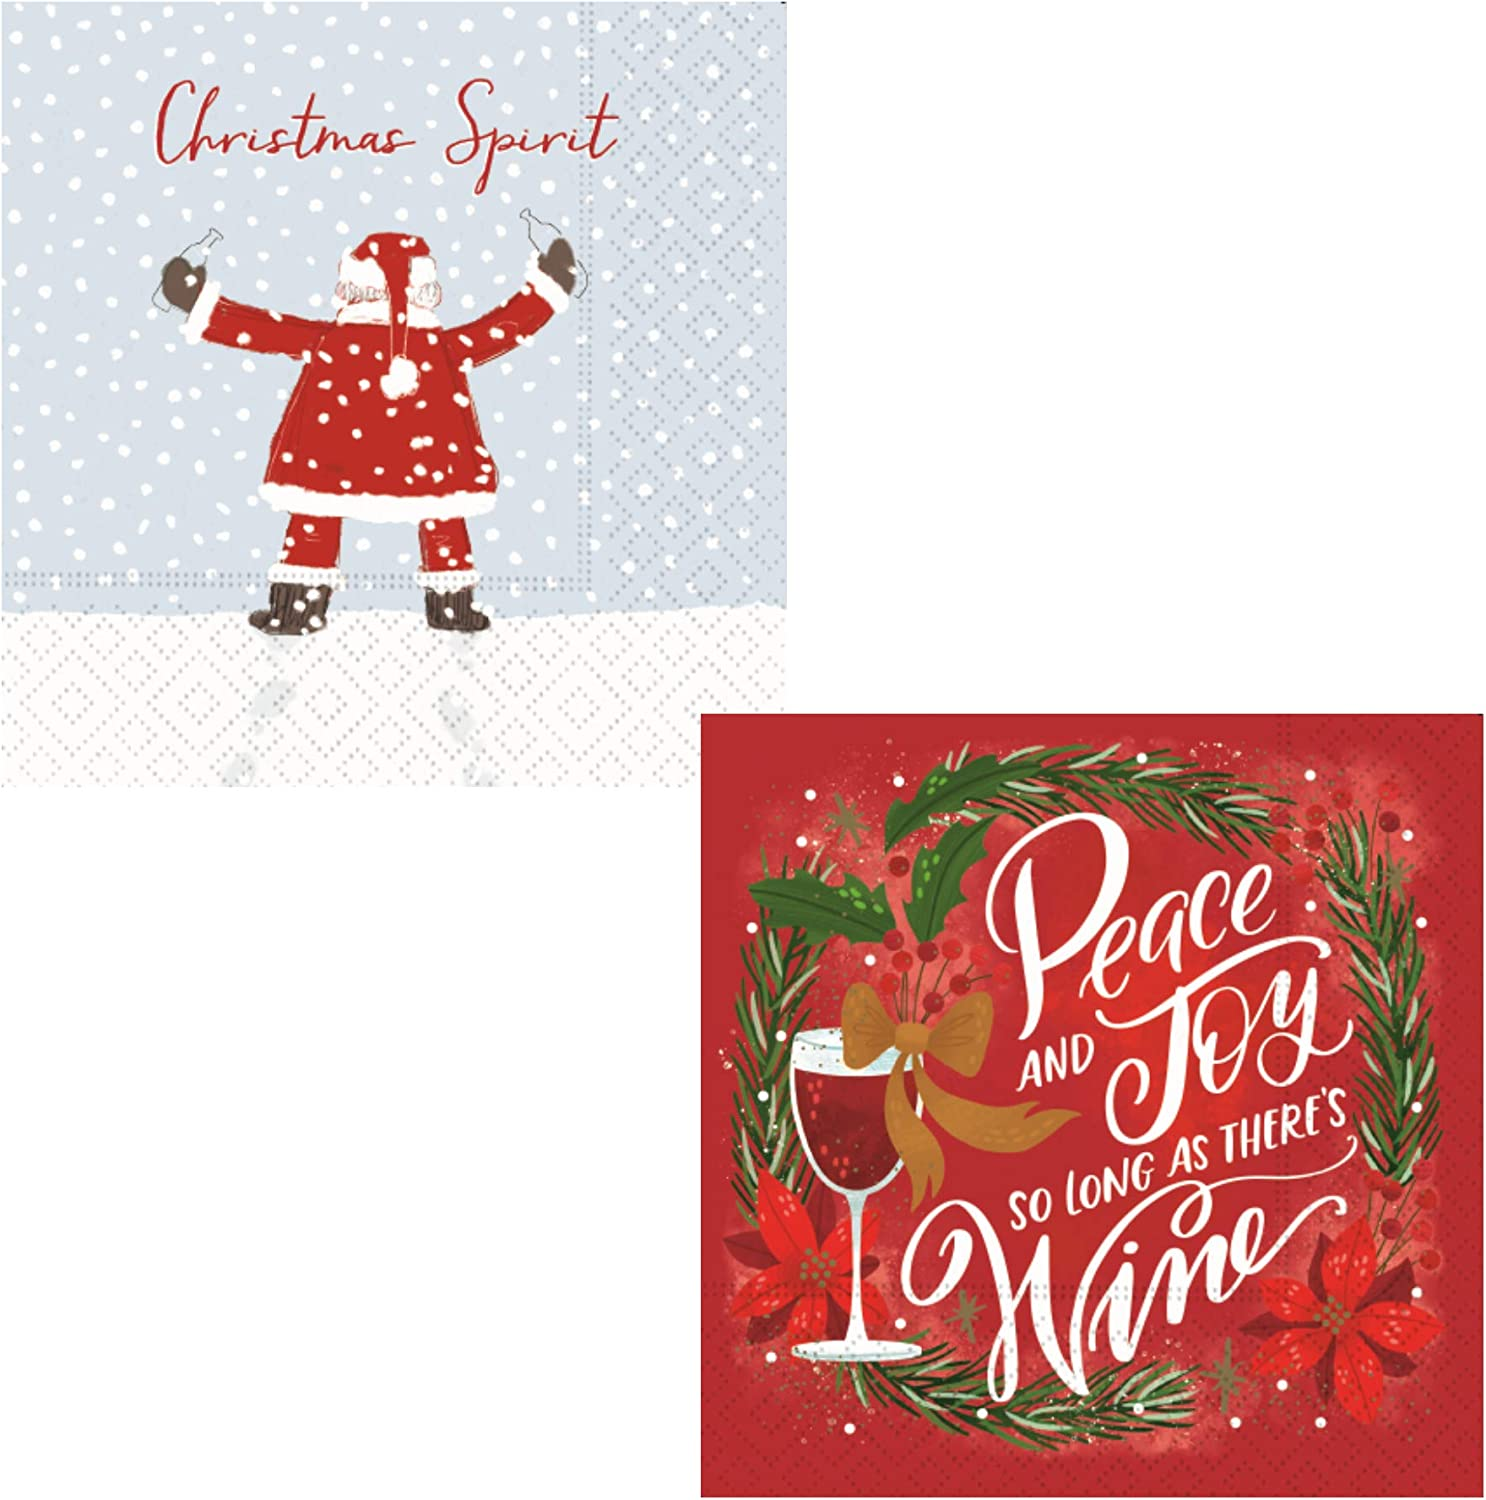 Funny Wine Themed Christmas Cocktail Napkins | Bundle Includes 40 Total Paper Beverage Napkins in 2 Designs | Fun Ladies Night Variety Pack